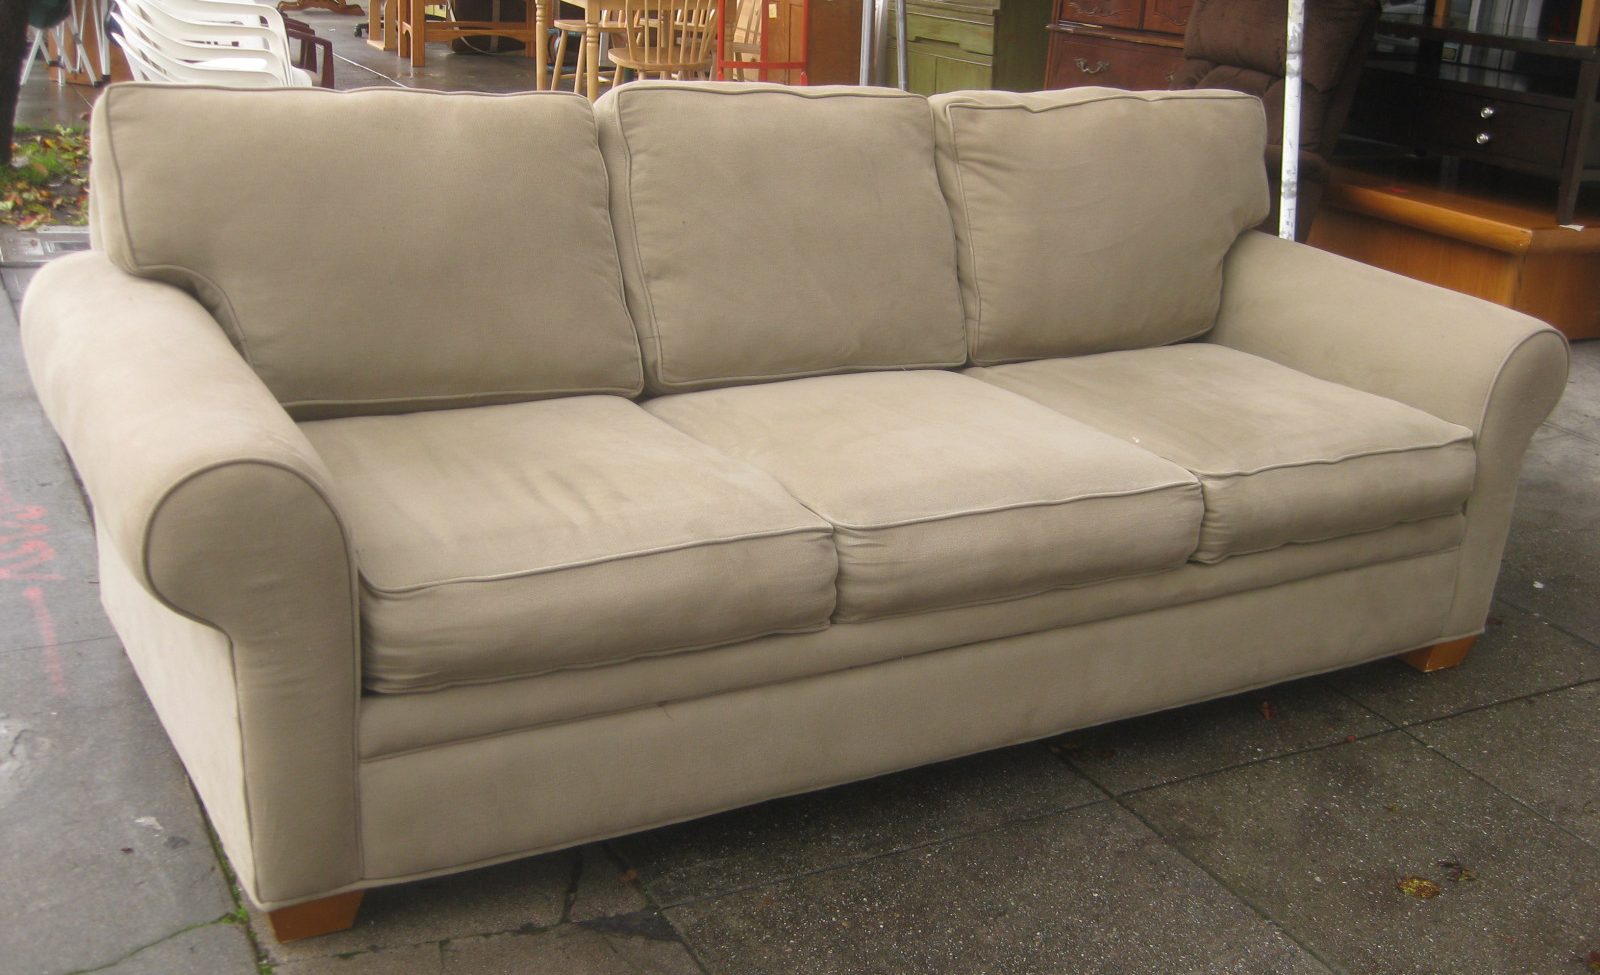 SOLD   Beige Sofa   $90